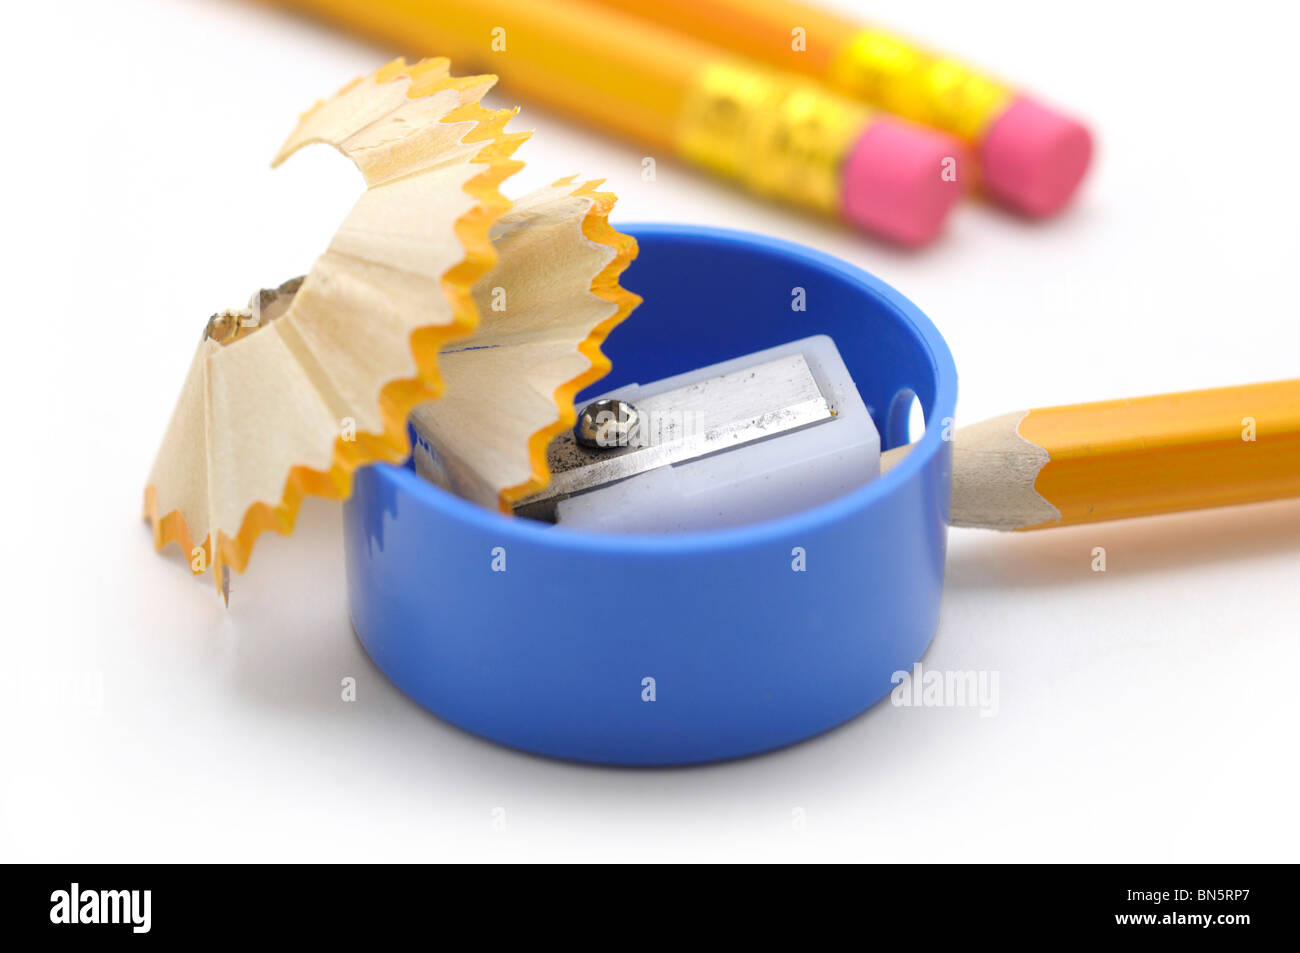 Pencil Sharpener and Pencils - Stock Image